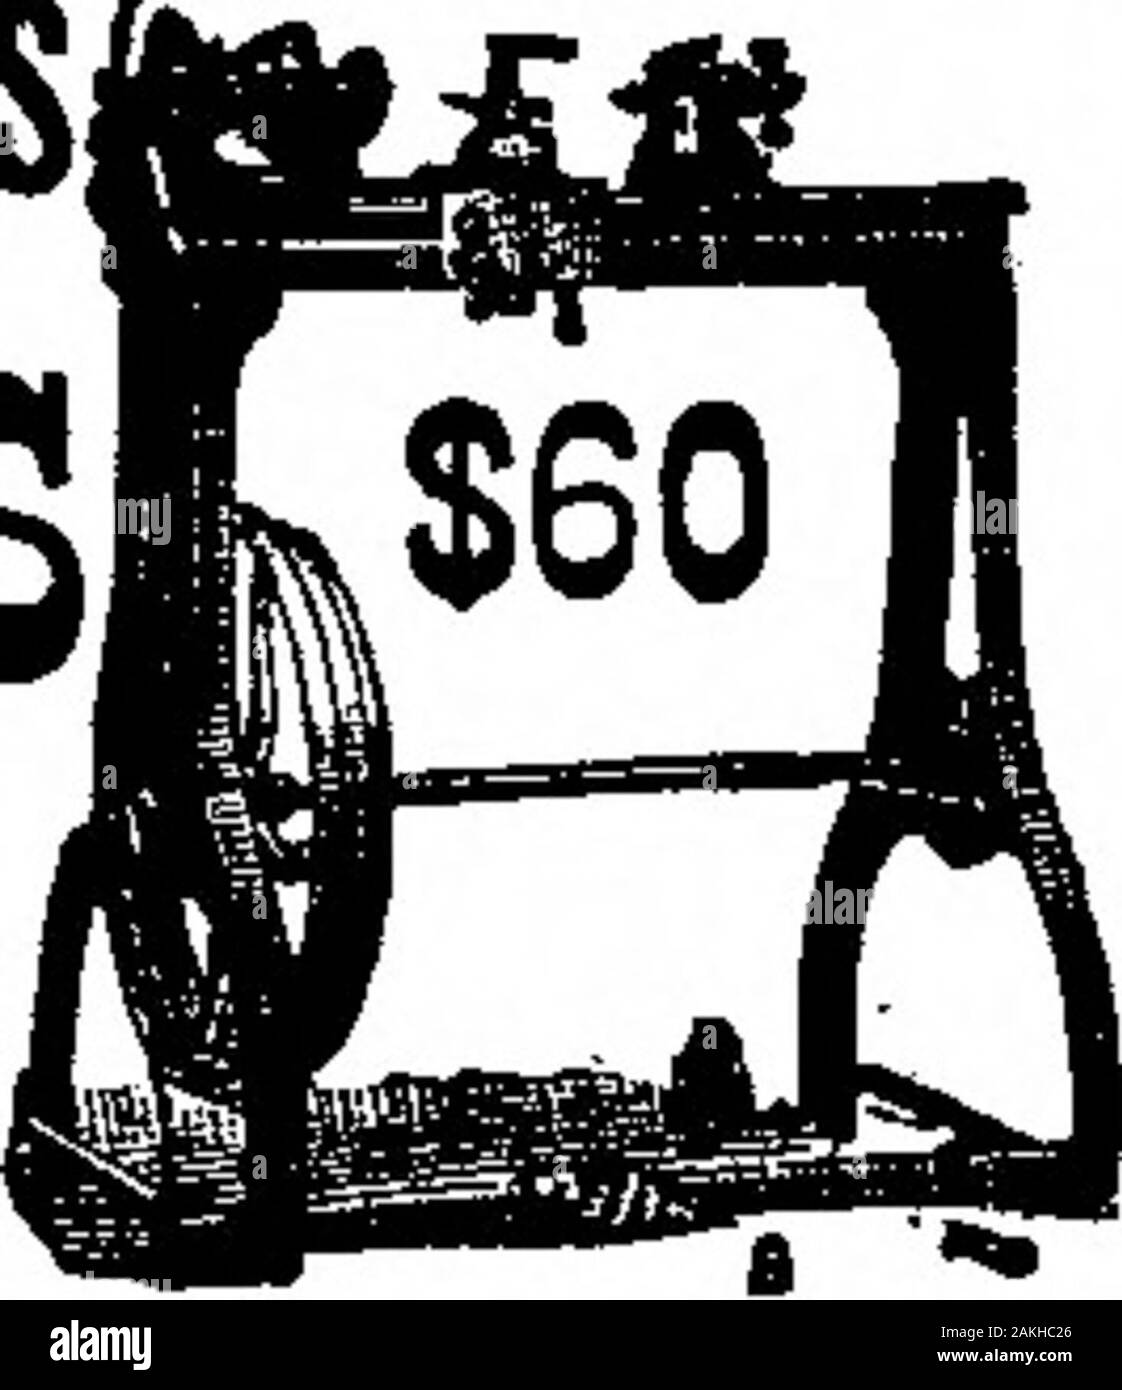 Scientific American Volume 59 Number 23 (December 1888) . LUNKENHEIMERS Gate Valves, Screw and Quick Opening. BEST MATERIALS ANDWORKRIANSBIP. All Trade Marked S Standard. Cincinnati Brass Works CINCINNATI, OHIO. rCE-HOUSE AND REFRIGERATOR. Directions and Dimensions for construction, with oneIllustration of cold house for preserving fruit fromseason to season. The air is kept dry and pure through-out the year at a temperature of from 34° to 36°. Con-tained in SciBNTiBio Amkrican Supplement No. 116.Price 10 cents. lo be pttA at this office and of all new»<tealers. SE6ASTIAN,MAY&C0S: IfflproTe Stock Photo